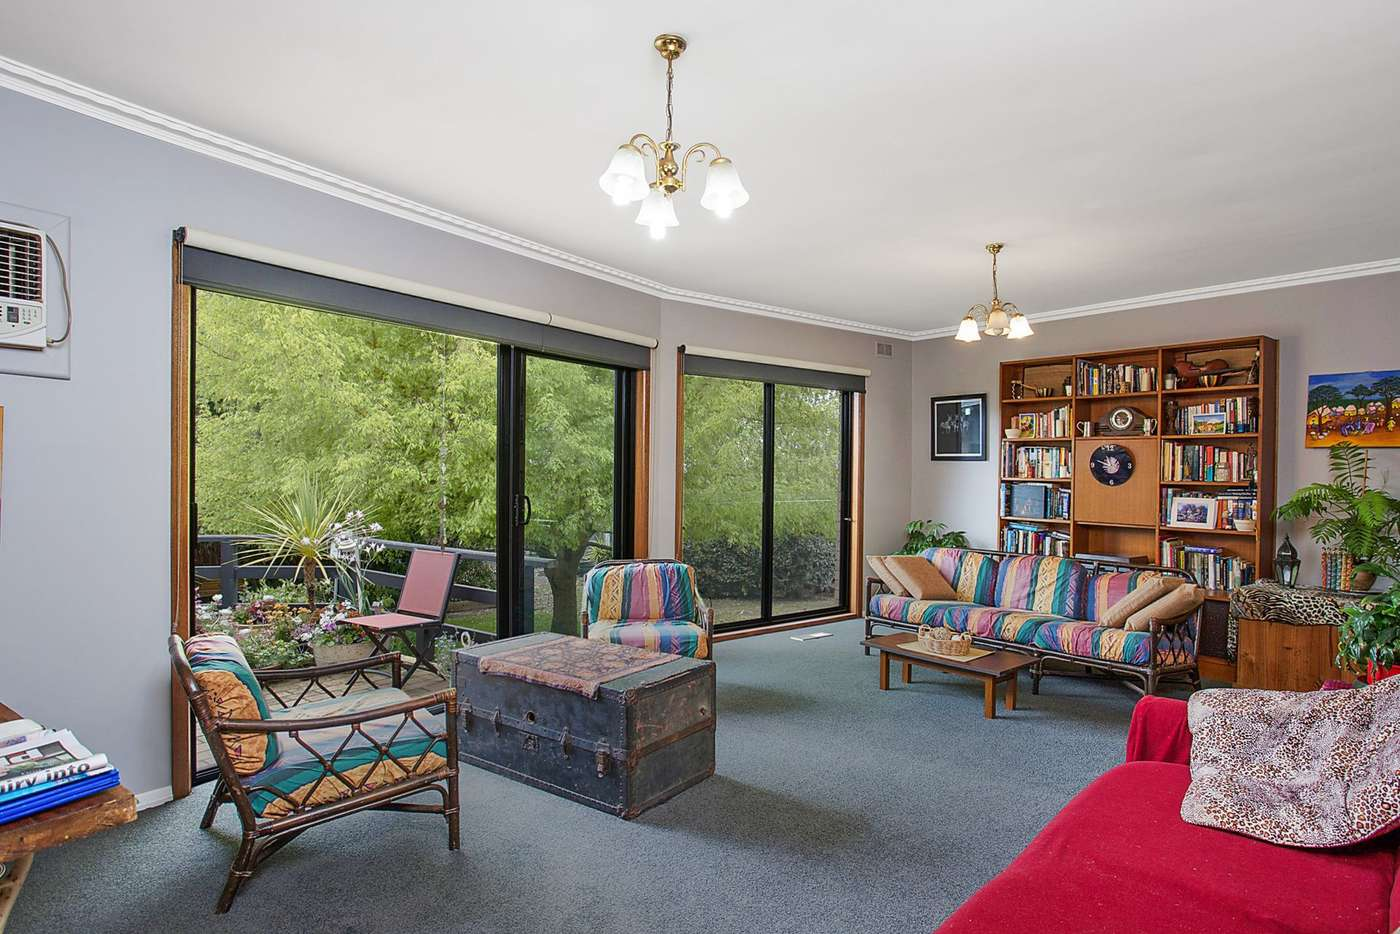 Sixth view of Homely house listing, 16 Park Avenue, Camperdown VIC 3260